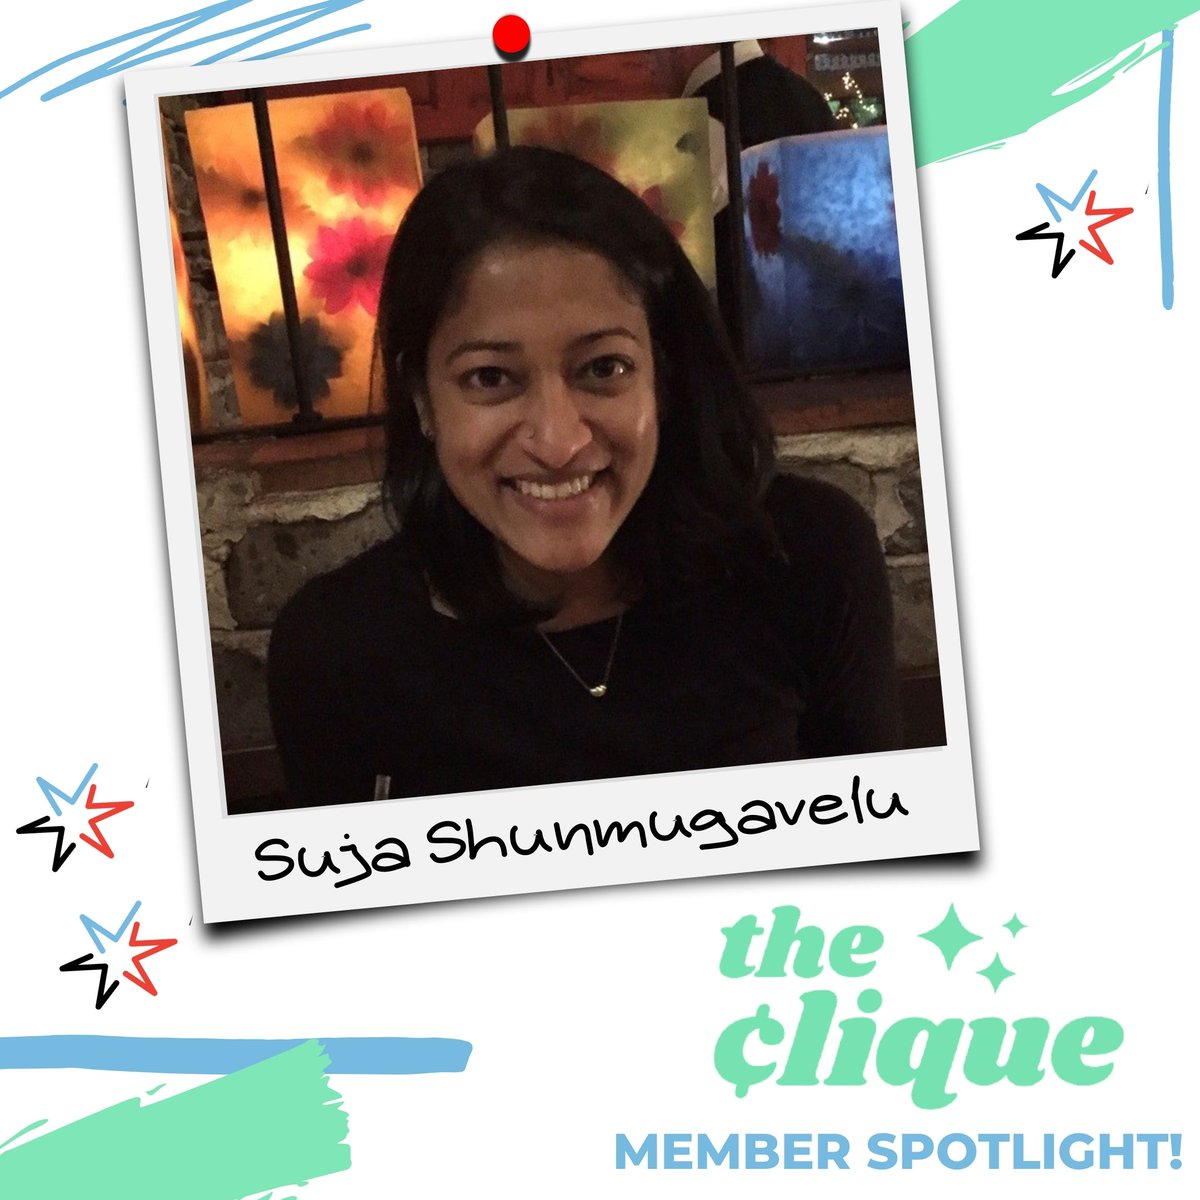 We LOVE our ¢lique so much❤️  Everyone meet @Shunmugs, Chicago Votes supporter and ¢lique member! We appreciate your support so much and can't wait to see you at our exclusive ¢lique events! https://t.co/yVEz08GedC